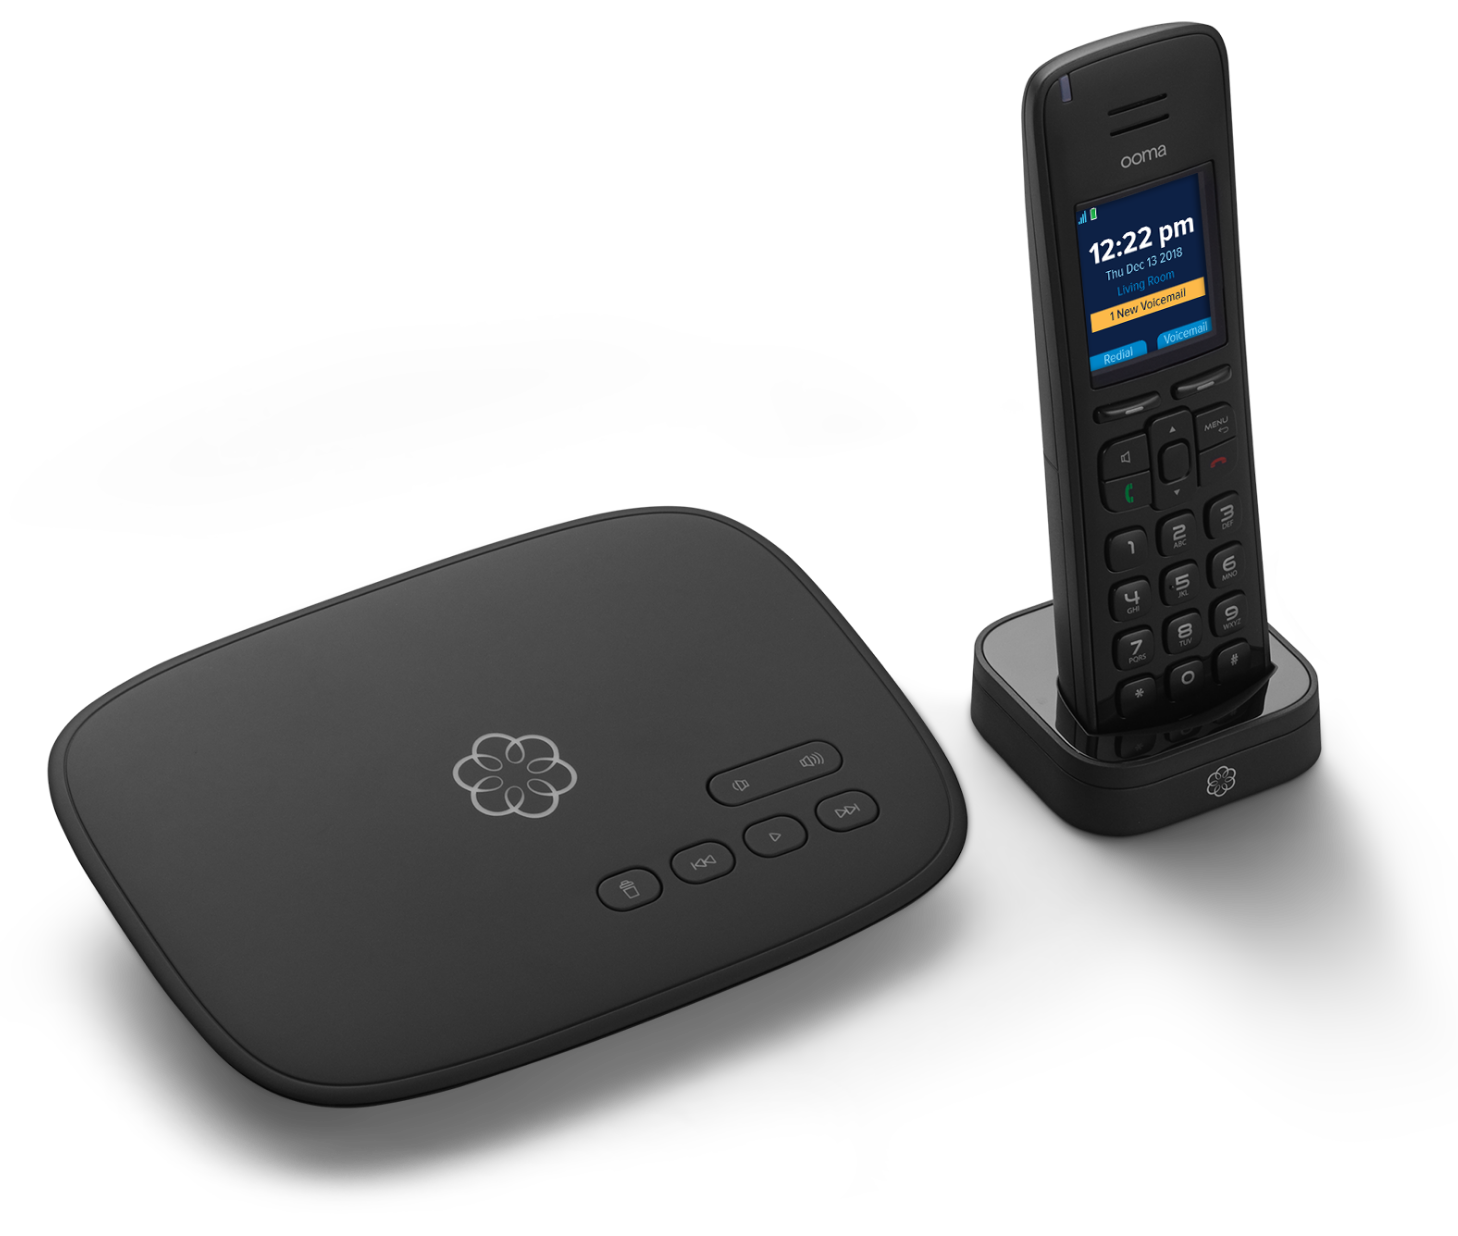 Ooma Telo with HD3 handset image